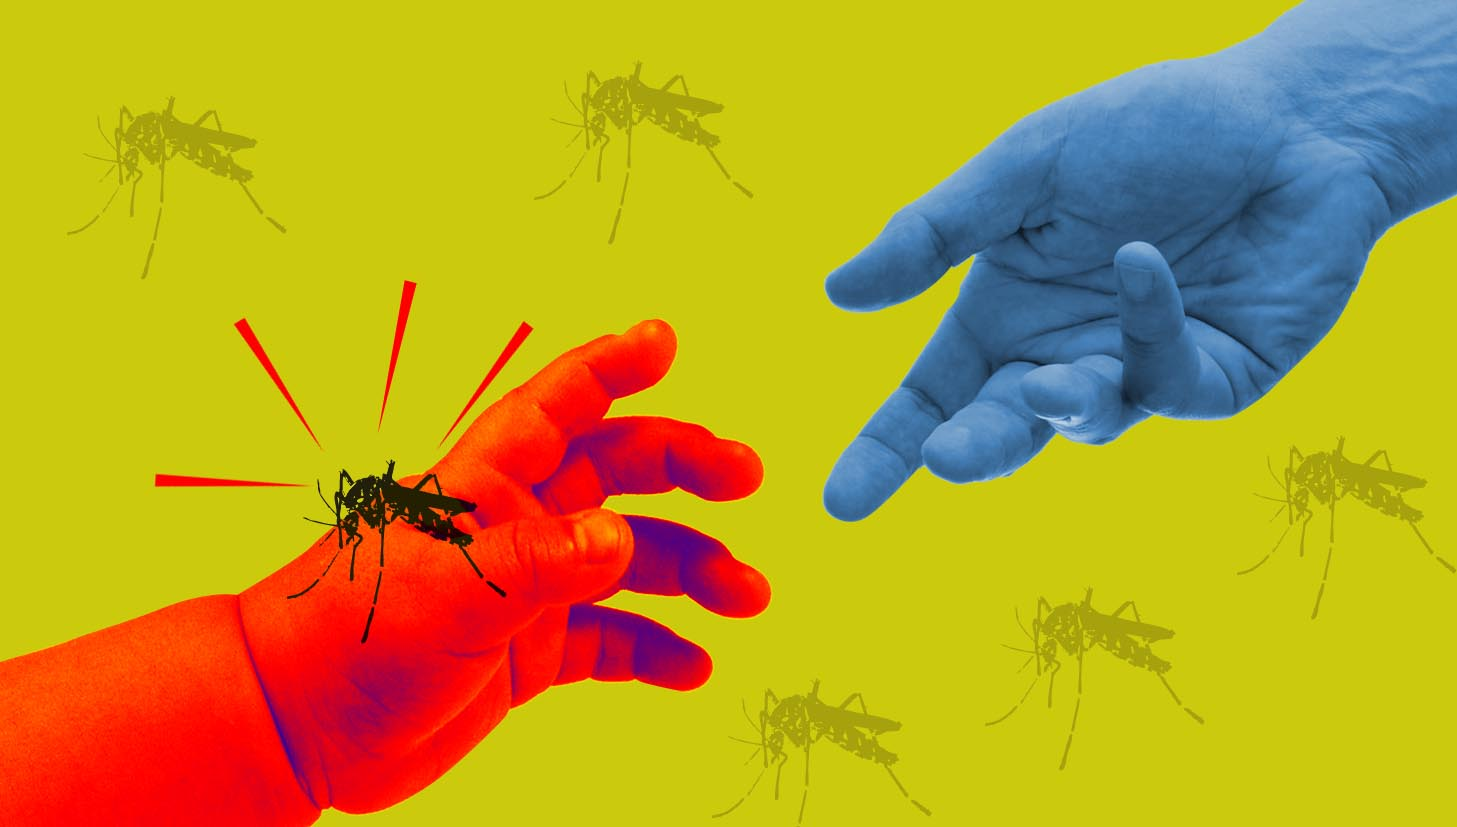 Fight The Bite At Home: Some Home Remedies For Treating Dengue - Buy Medicine Online, Online Pharmacy Noida, Online Medicines, Buy Medicine Online Noida, Nearby Pharmacy, Purchase Medicine Online, GoMedii